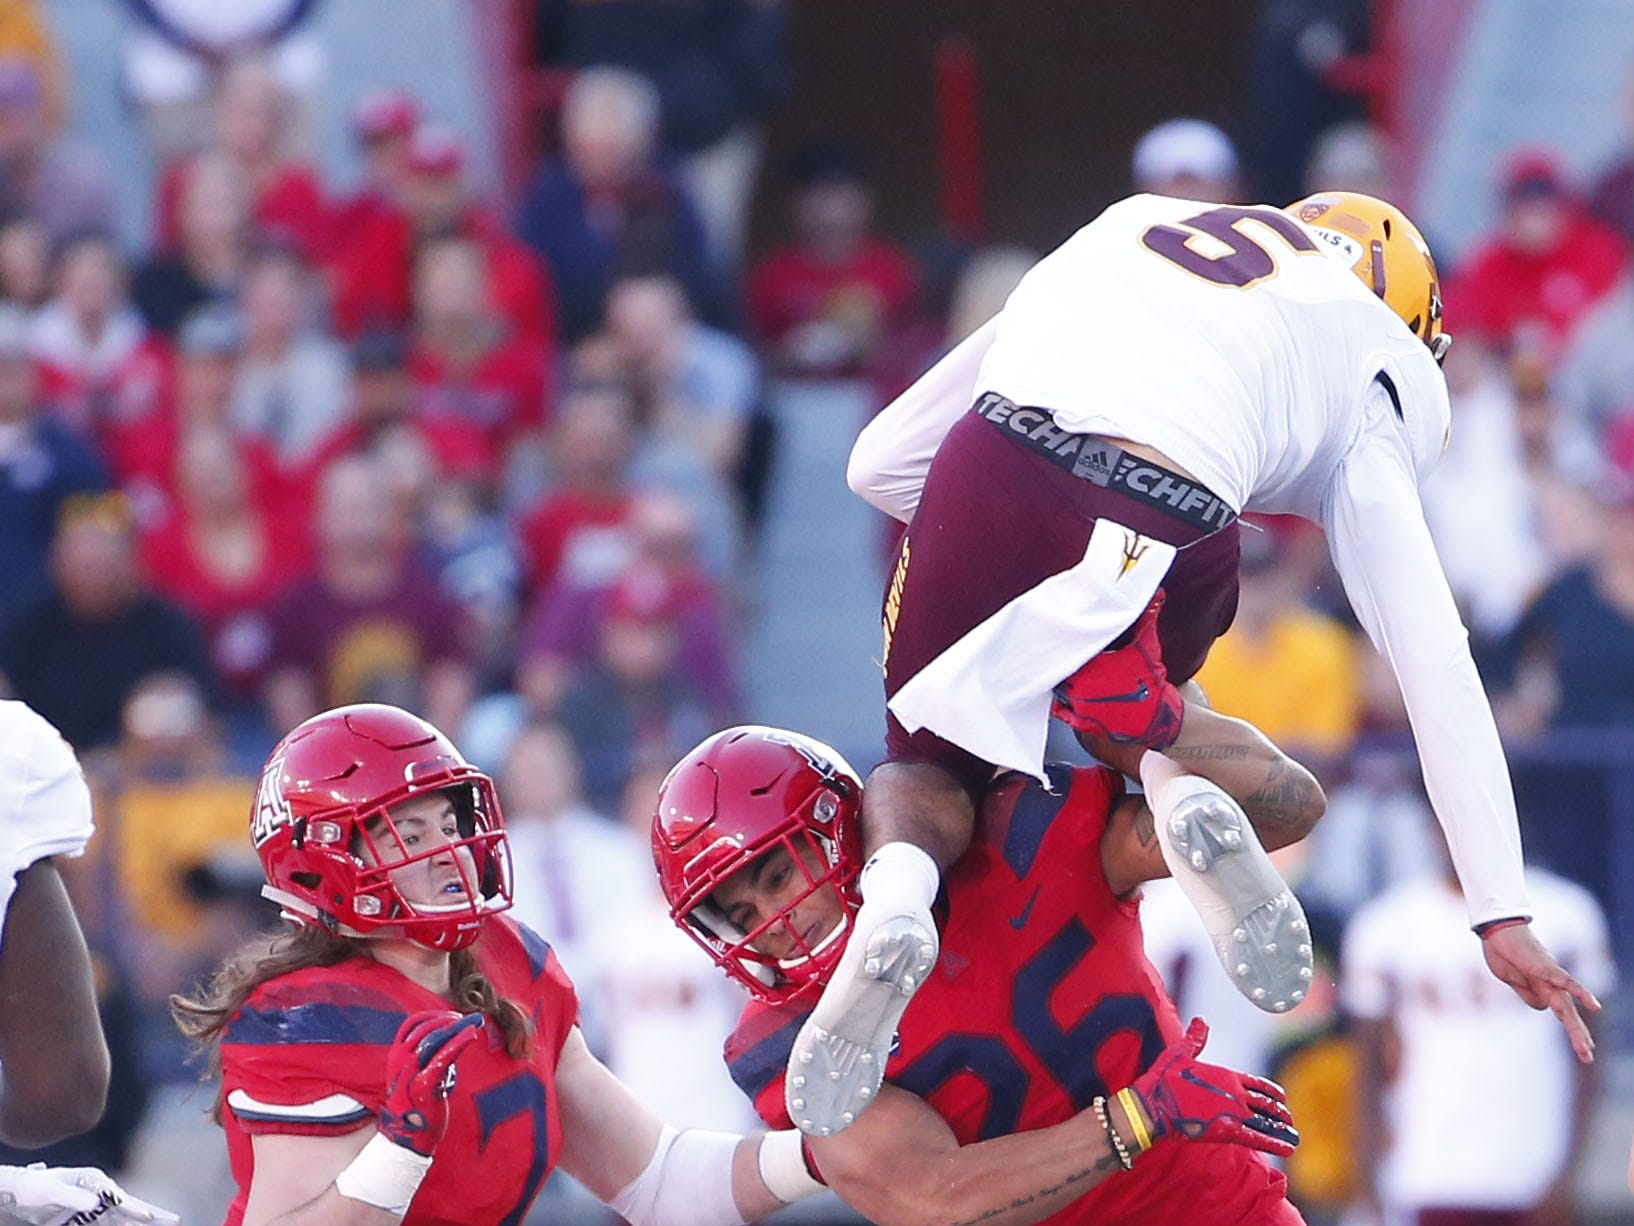 Arizona Wildcats linebacker Anthony Pandy (26) stops Arizona State Sun Devils quarterback Manny Wilkins (5) from hurdling him during the Territorial Cup football game at Arizona Stadium in Tucson on November 24.